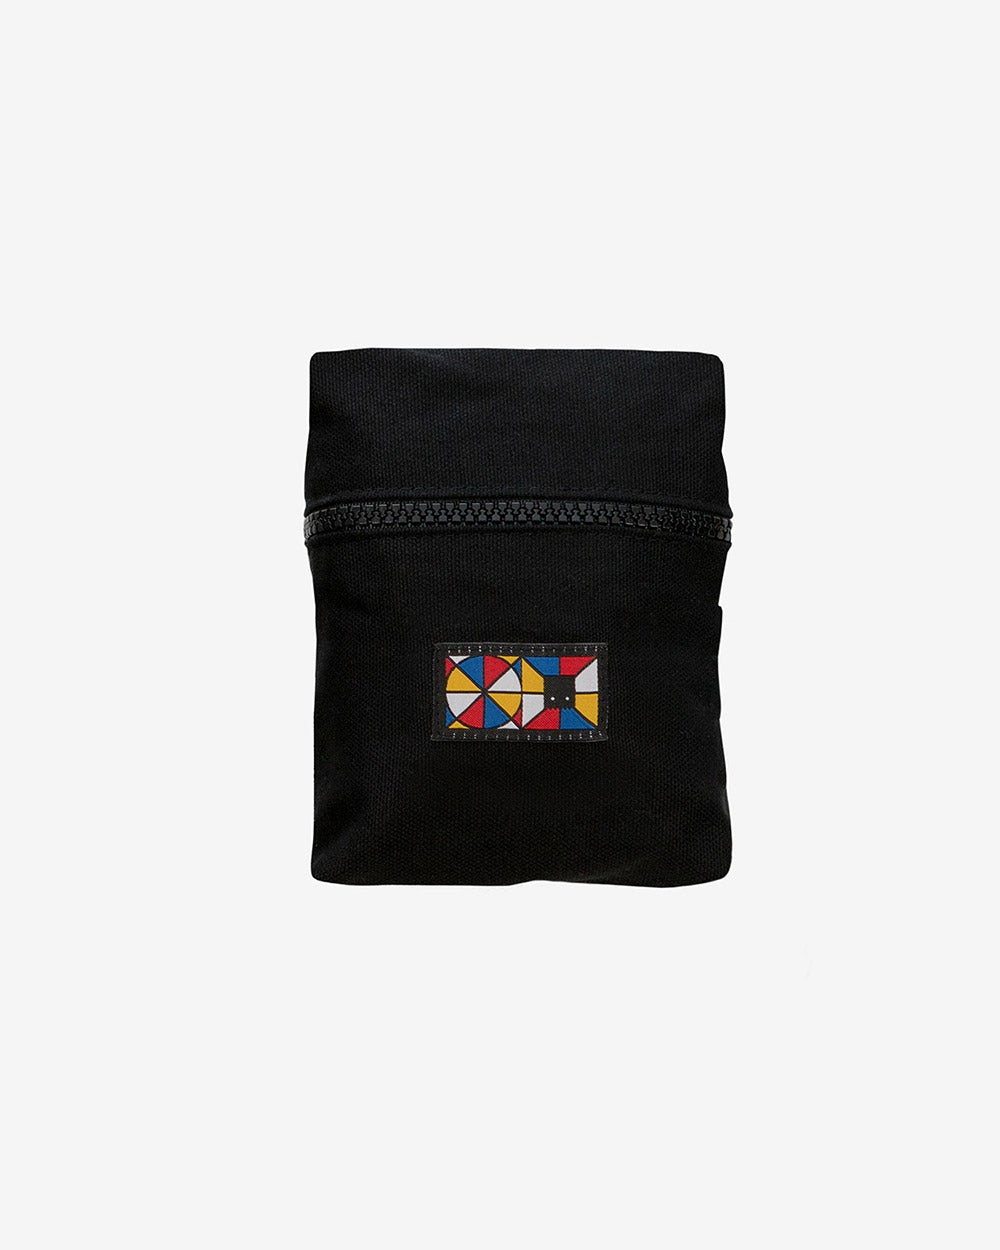 Image of Hand Mixed x Herokid · Black Magic Bag